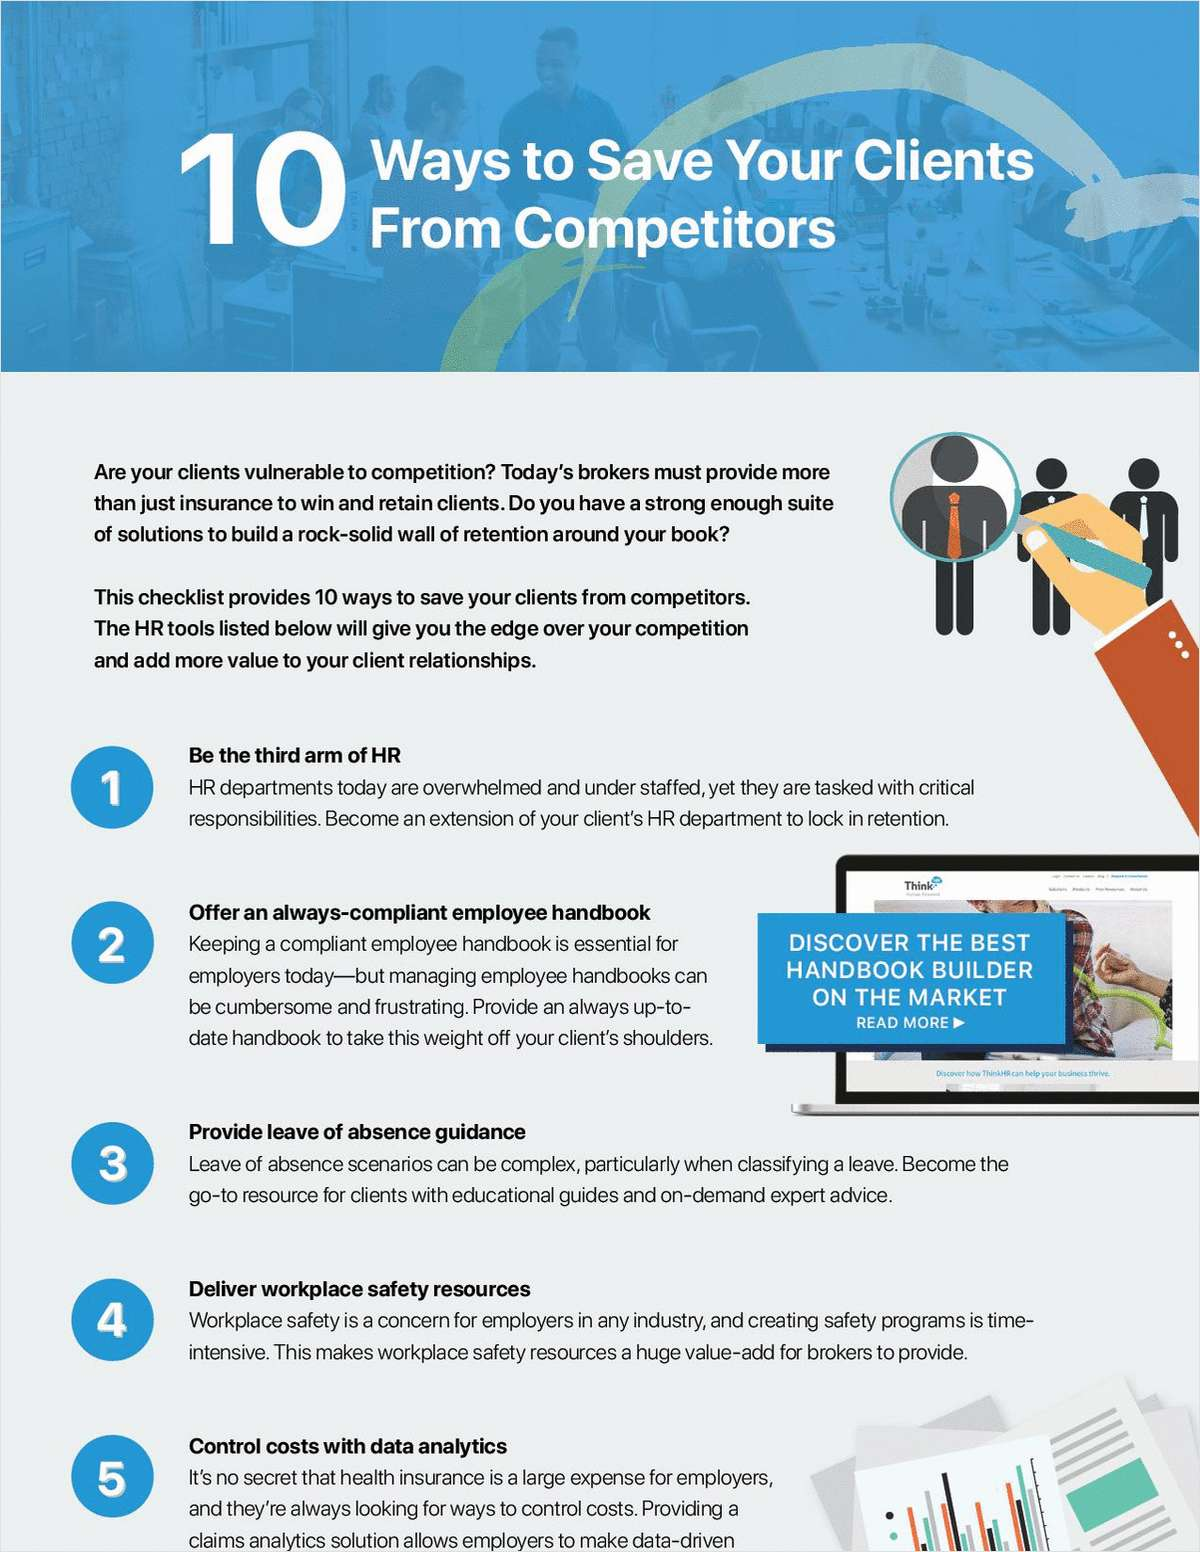 10 Ways to Save Your Clients from Competitors